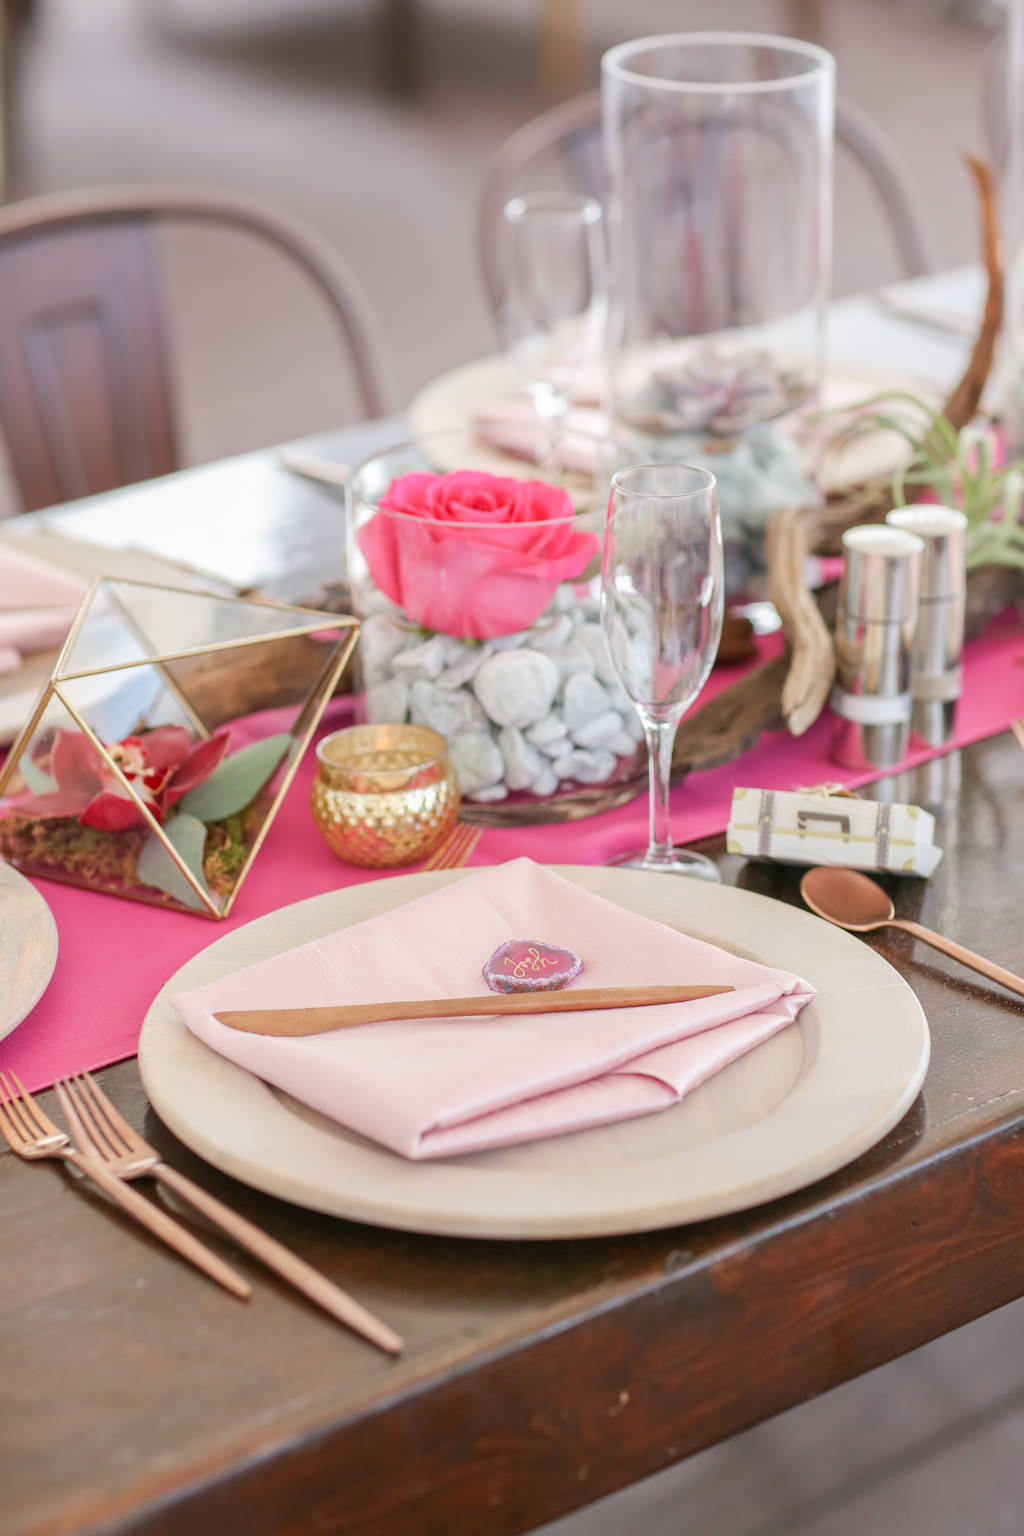 Travel Inspired Wedding Reception Decor, Long Wodoen Feasting Table, Wooden Chargers with Blush Pink Linens, Hot Pink Table Runner, Birchwood and Glass Vase with Stone and Pink Rose Centerpieces, Geometric Vase with Dark Pink Floral | Tampa Bay Wedding Photographer Lifelong Photography Studios